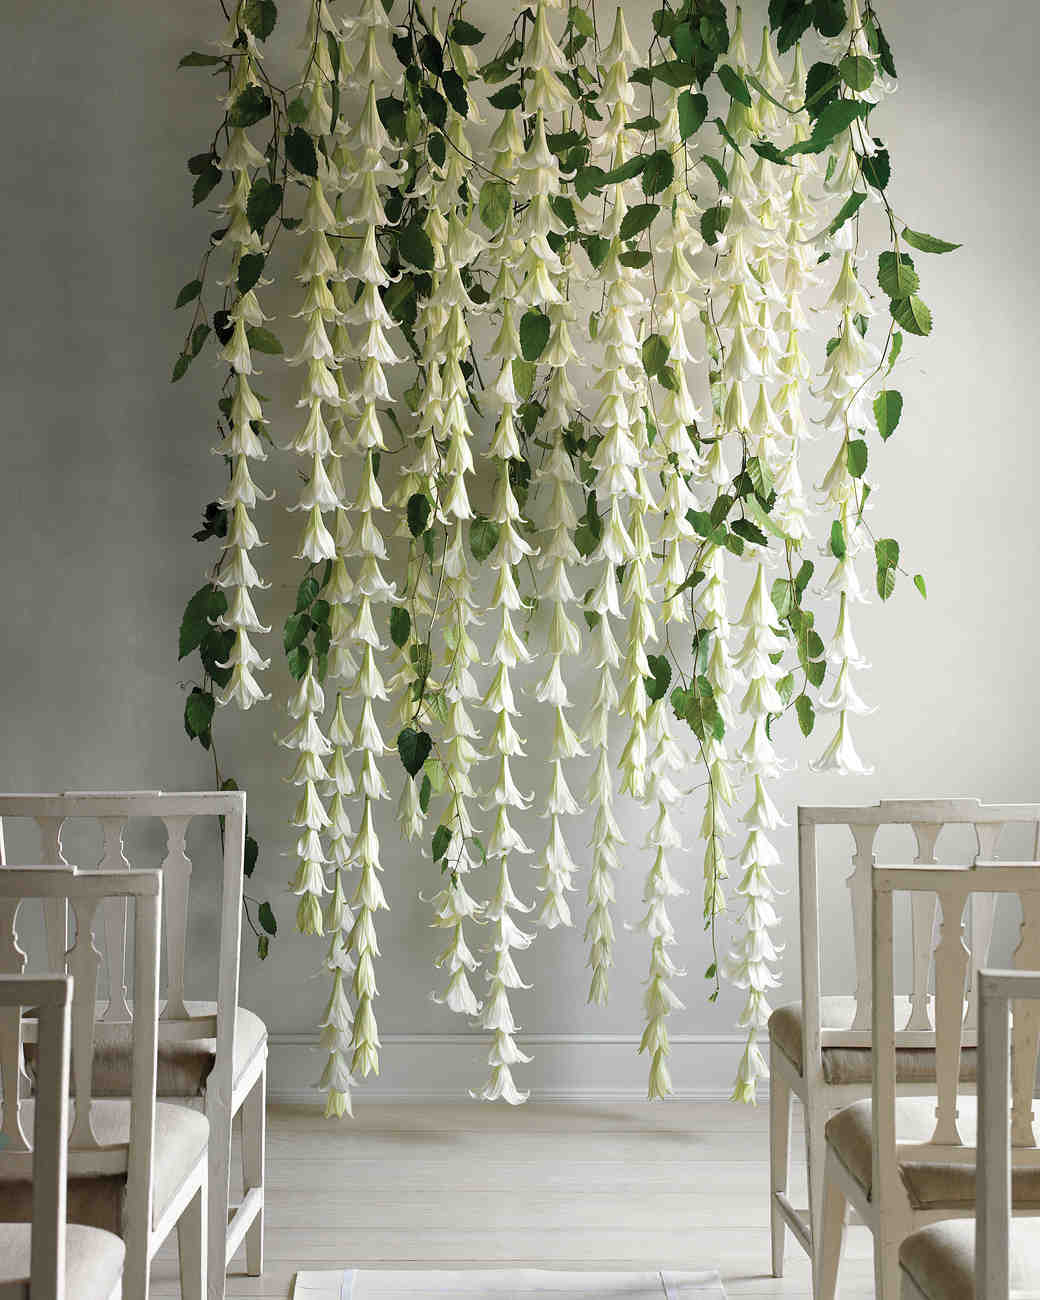 5 Spectacular Flower Walls To Inspire Your Own Wedding Backdrop